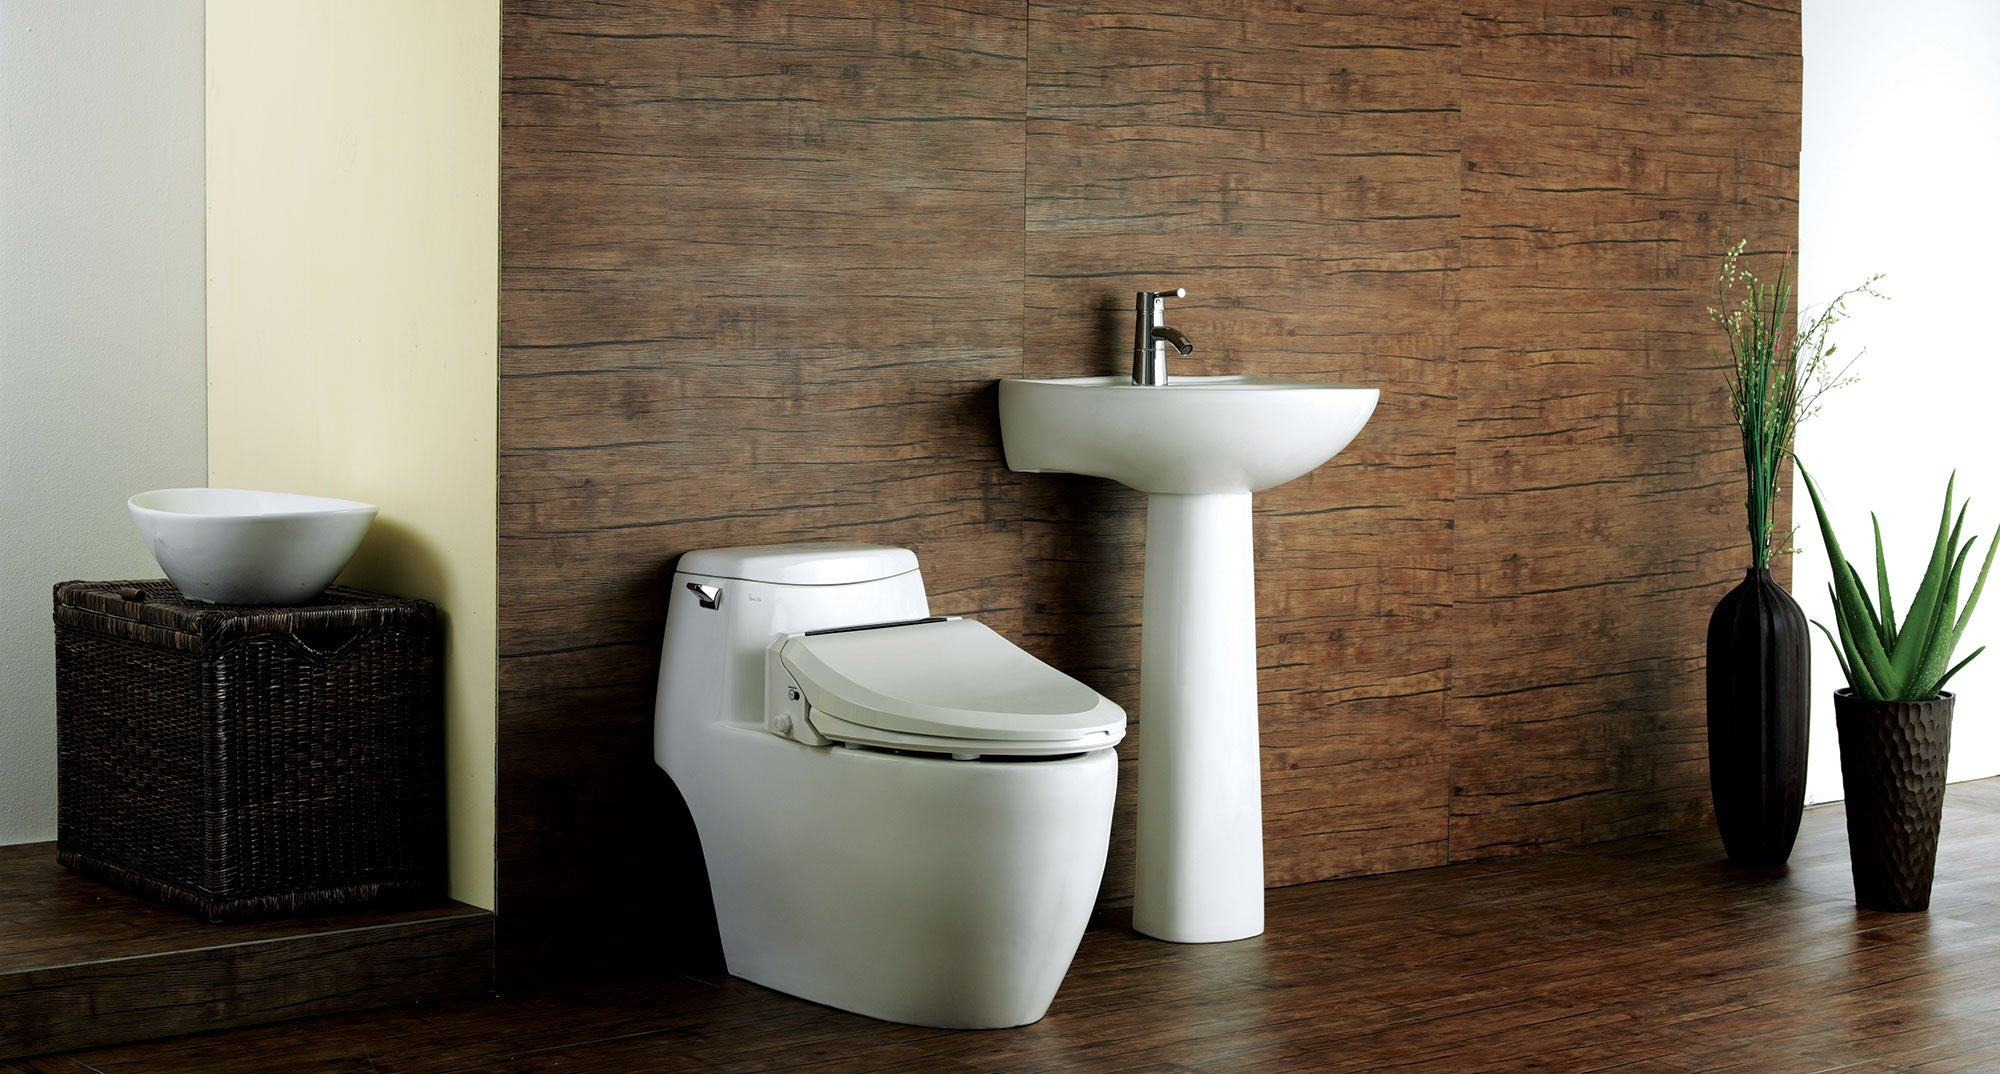 Bb 600 Ultimate Luxury Bidet Bio Bidet